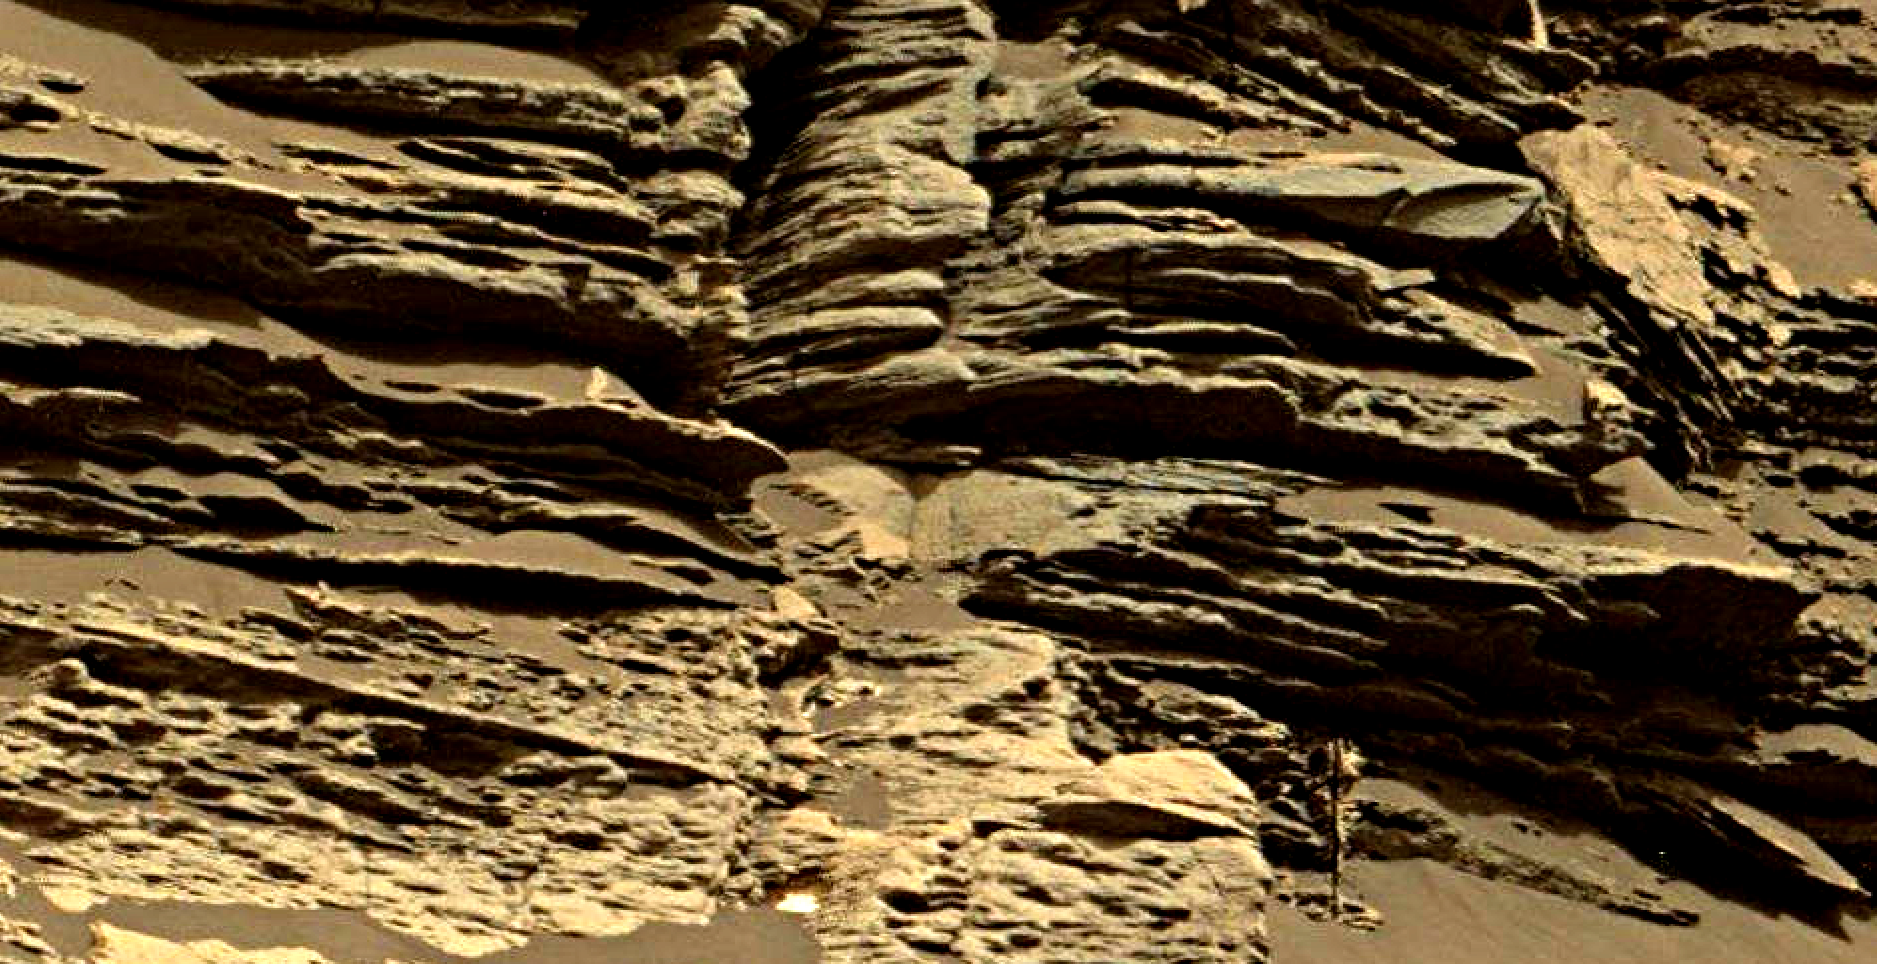 mars-sol-1450-anomaly-artifacts-3-was-life-on-mars